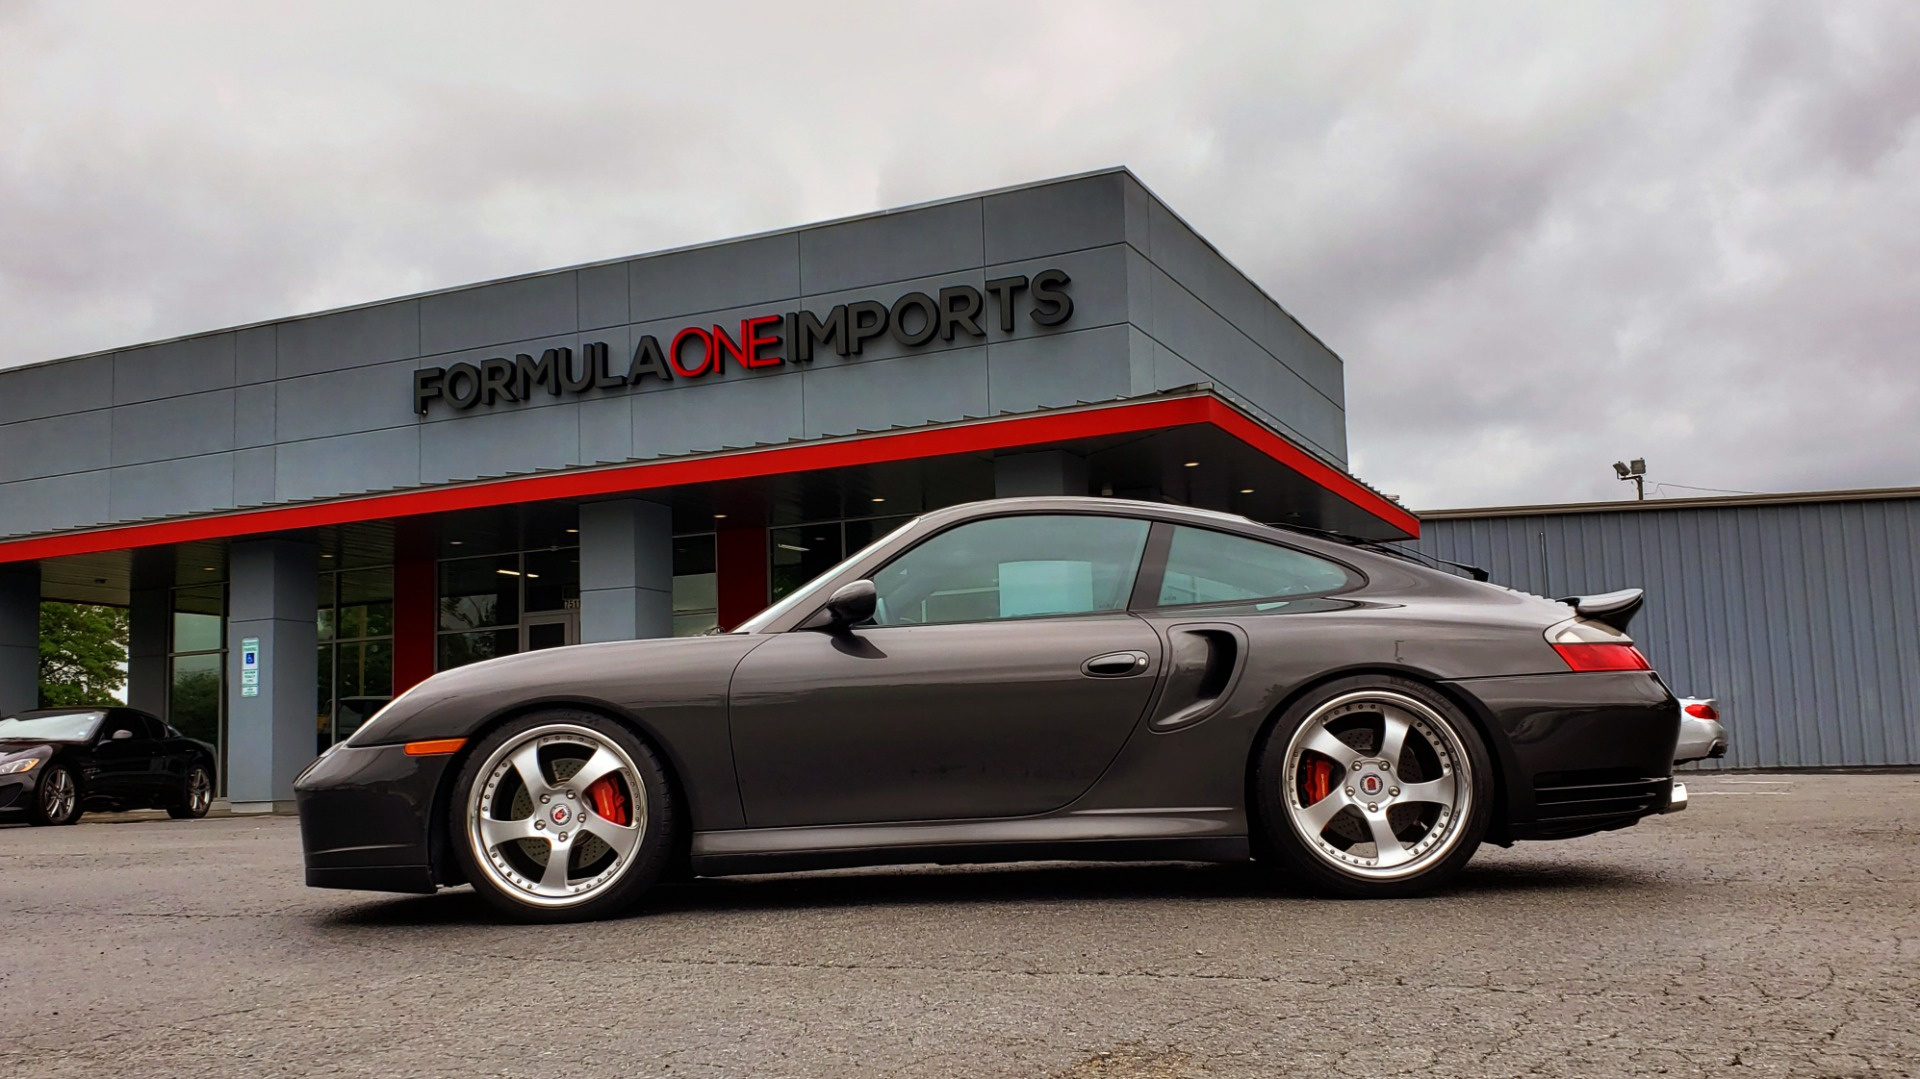 Used 2002 Porsche 911 CARRERA TURBO COUPE / 6-SPD MANUAL / PERF UPGRADES & CUSTOM TUNE for sale Sold at Formula Imports in Charlotte NC 28227 81